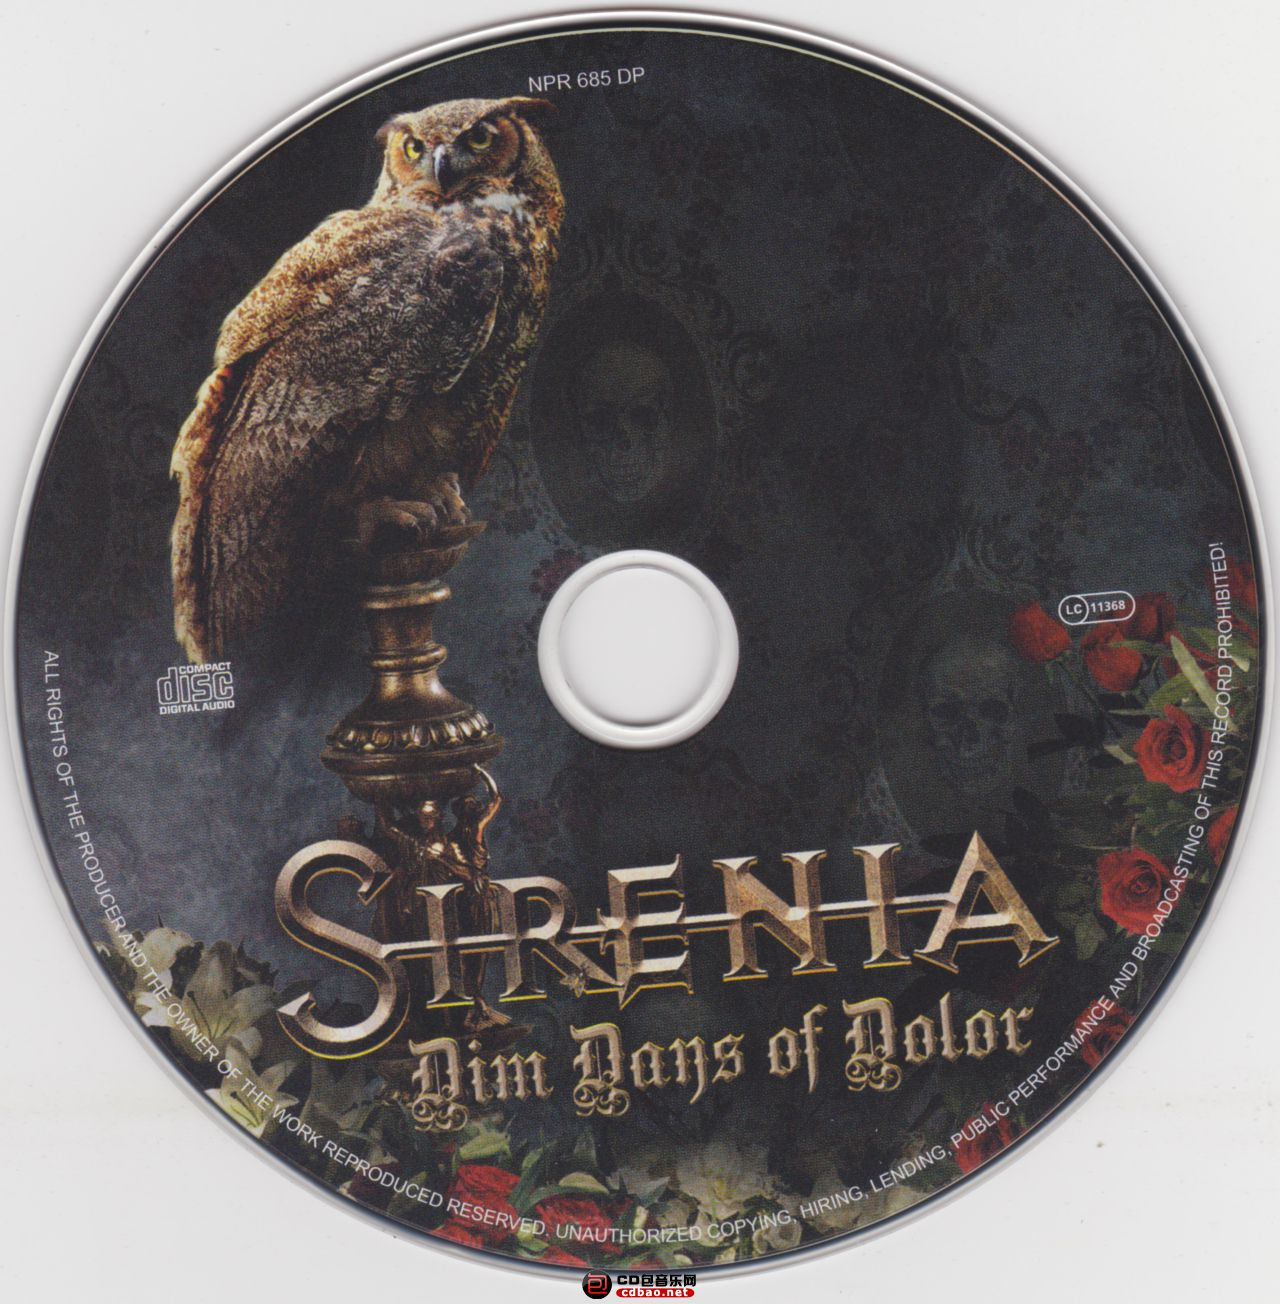 Sirenia-2016-Dim Days Of Dolor-CD.jpg